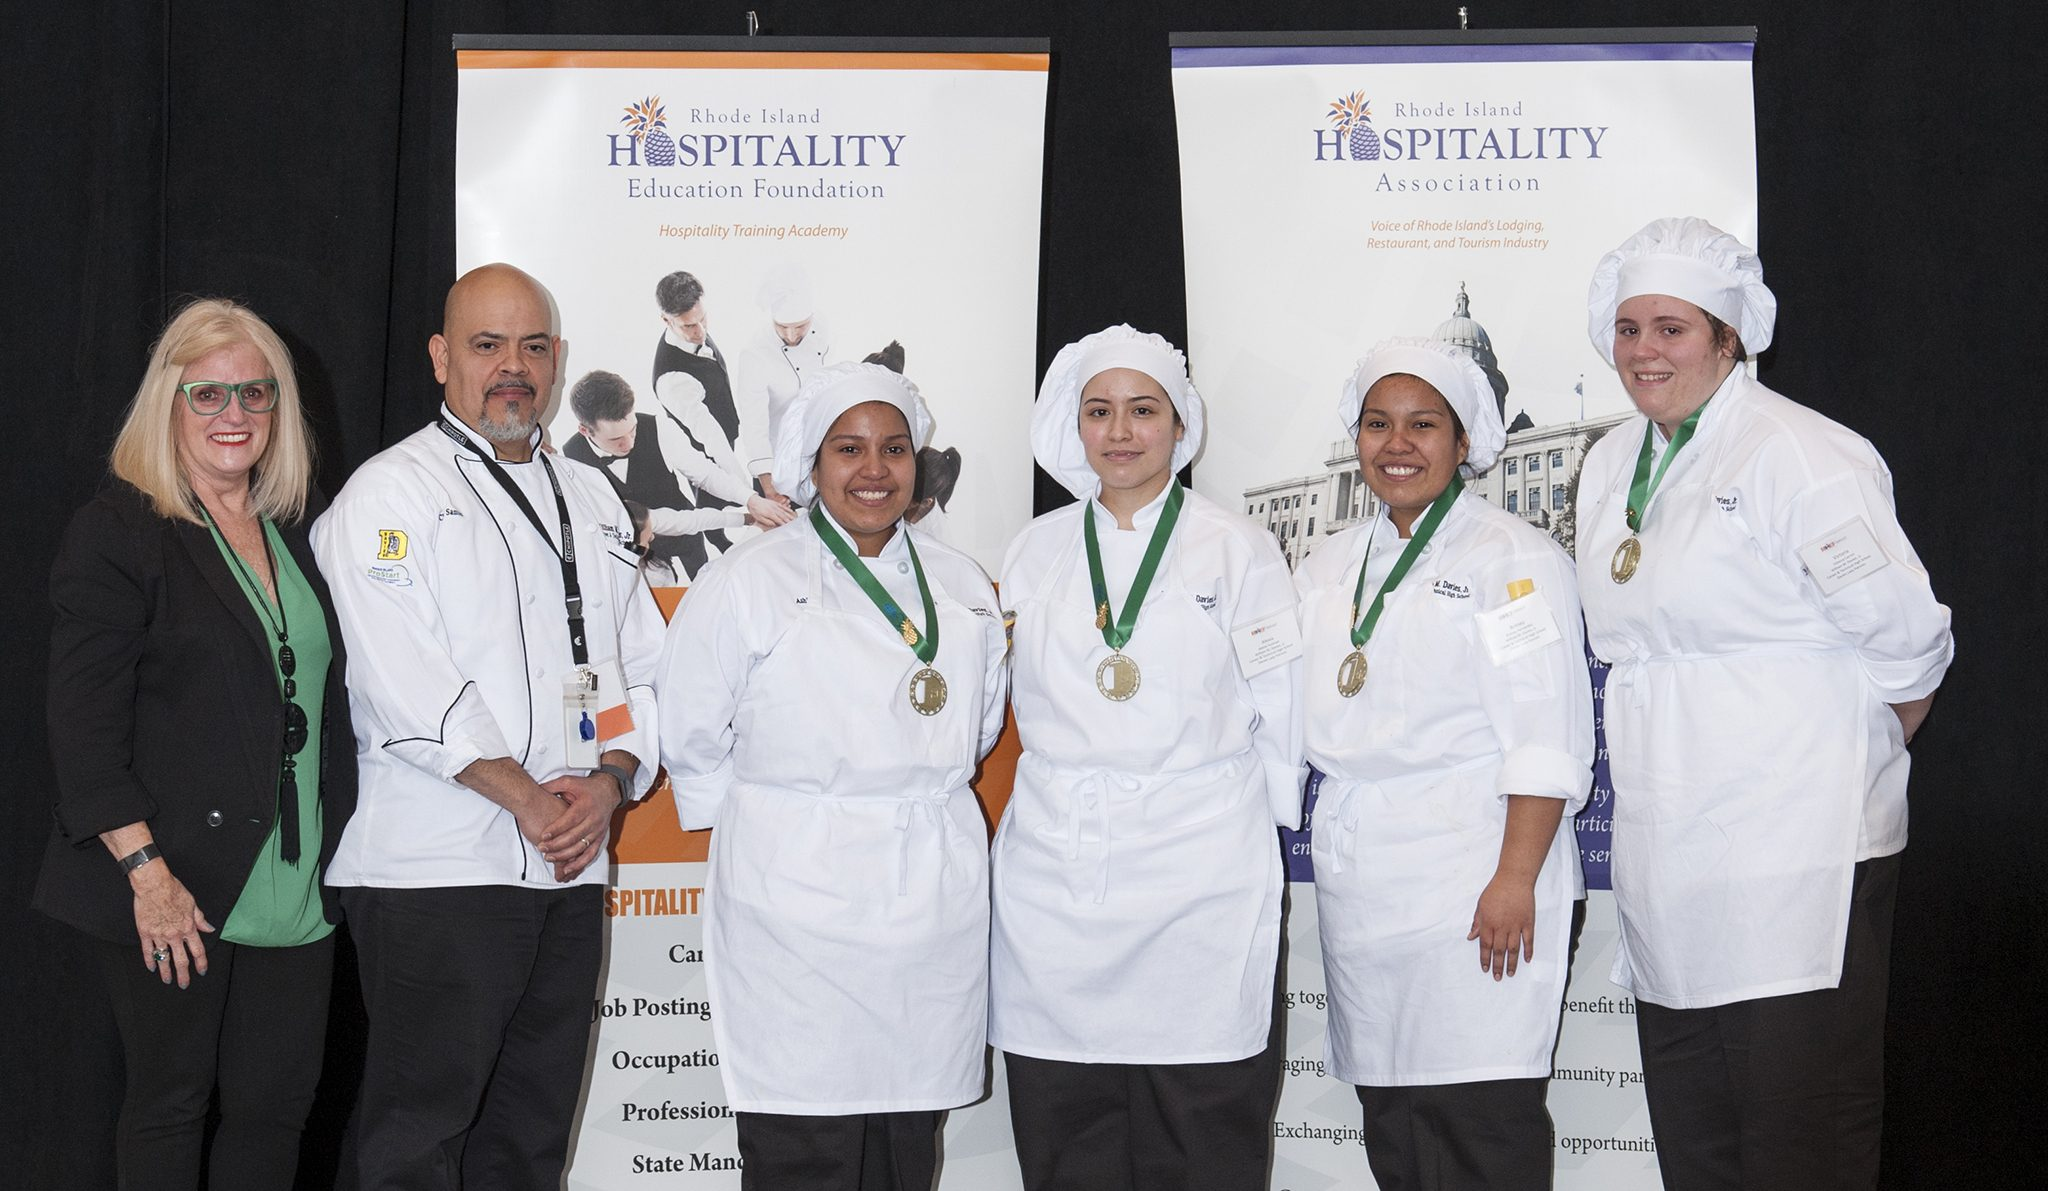 ProStart Culinary Arts Competition Winners from William M. Davies, Jr. Career & Technical High School: (From left to right): Dale J. Venturini, President/CEO of RIHA/RIHEF; Chef Instructor Santos Nieves; William M. Davies, Jr. Career & Technical High School students Ashley Fernandez, Alexia Guzman, Britney Fernandez, and Victoria Carron. Photo credit: Richard Kizirian.